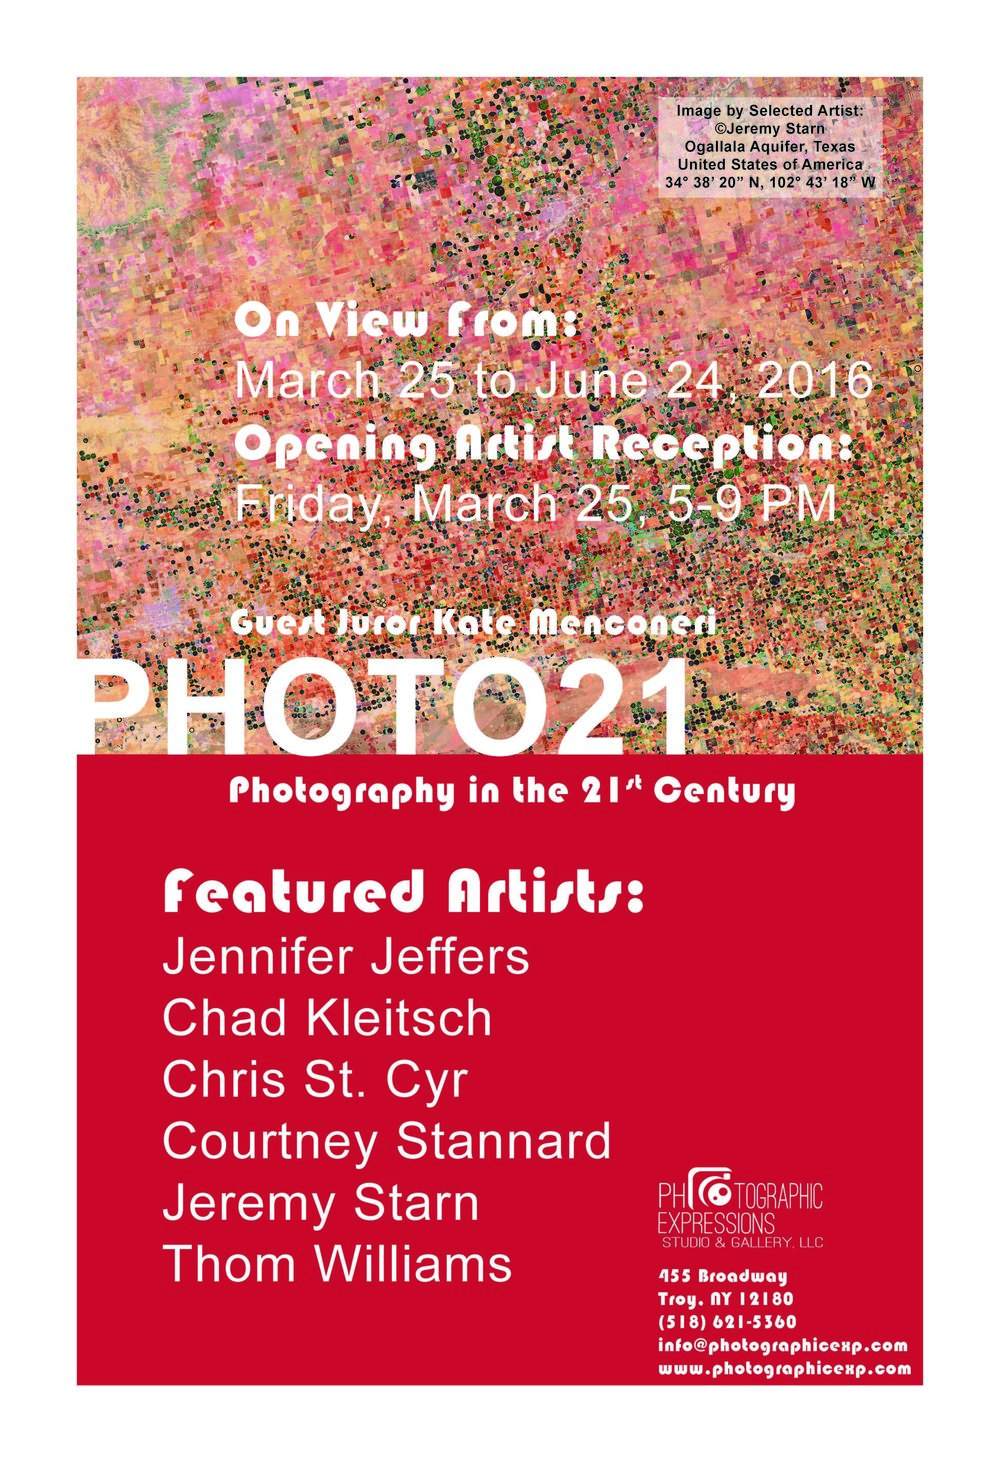 GROUP EXHIBITION: PHOTO21: Photography in the 21st Century